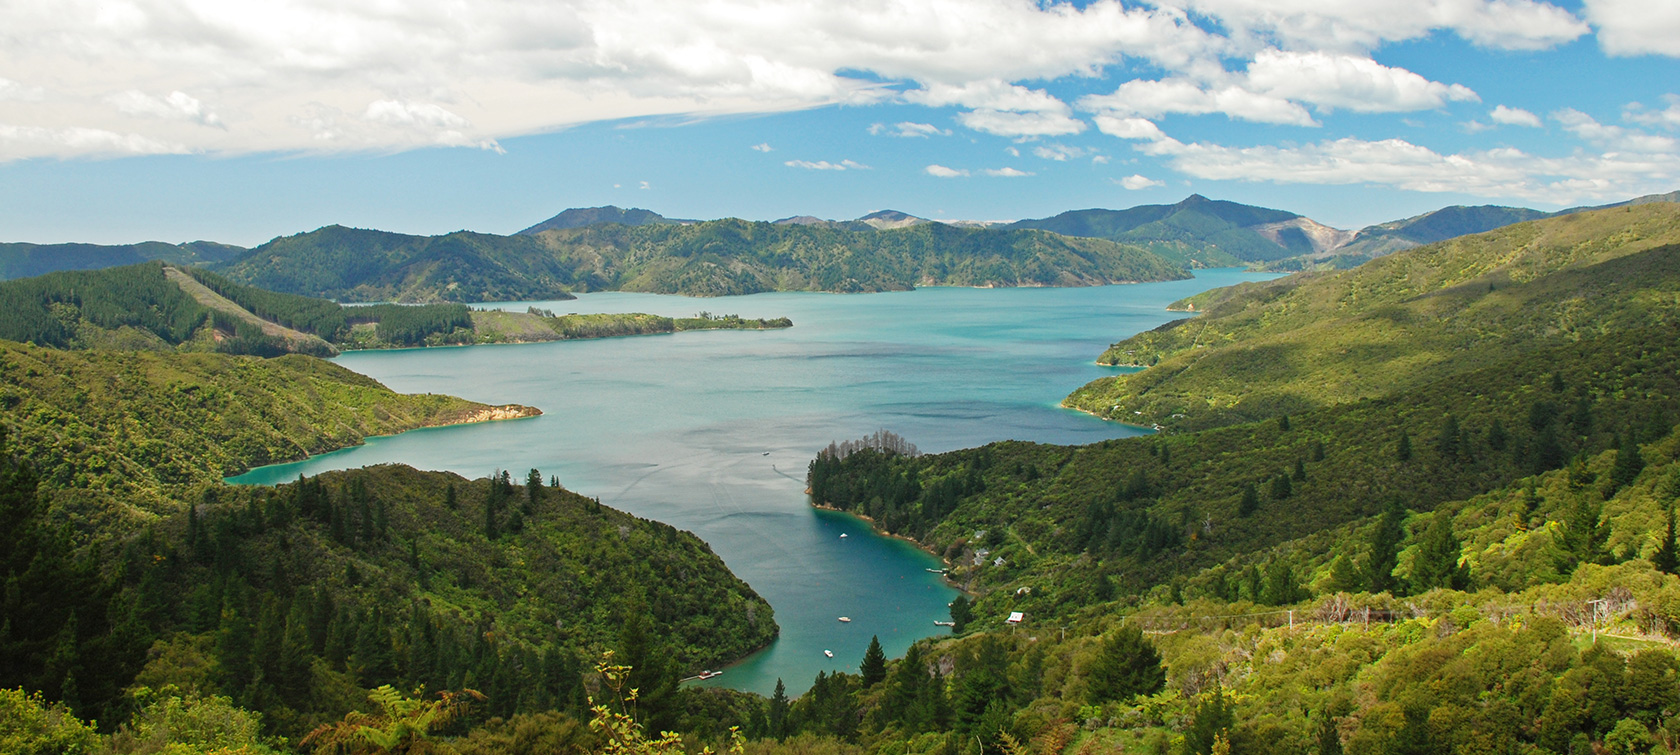 Best Of The Marlborough Sounds Australasia Amp South